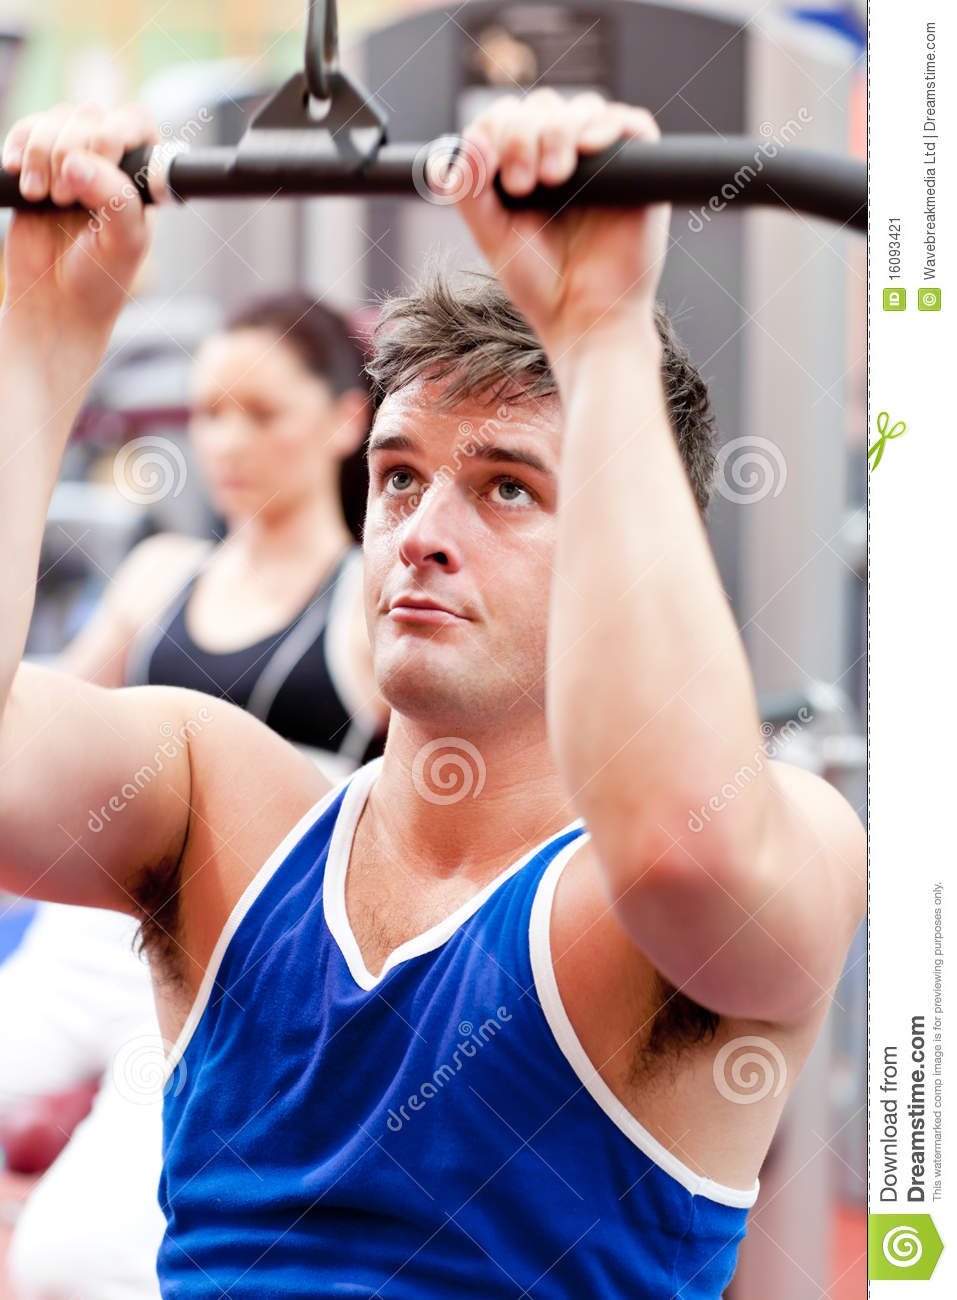 Male Athlete Practicing Body Building Stock Image Image